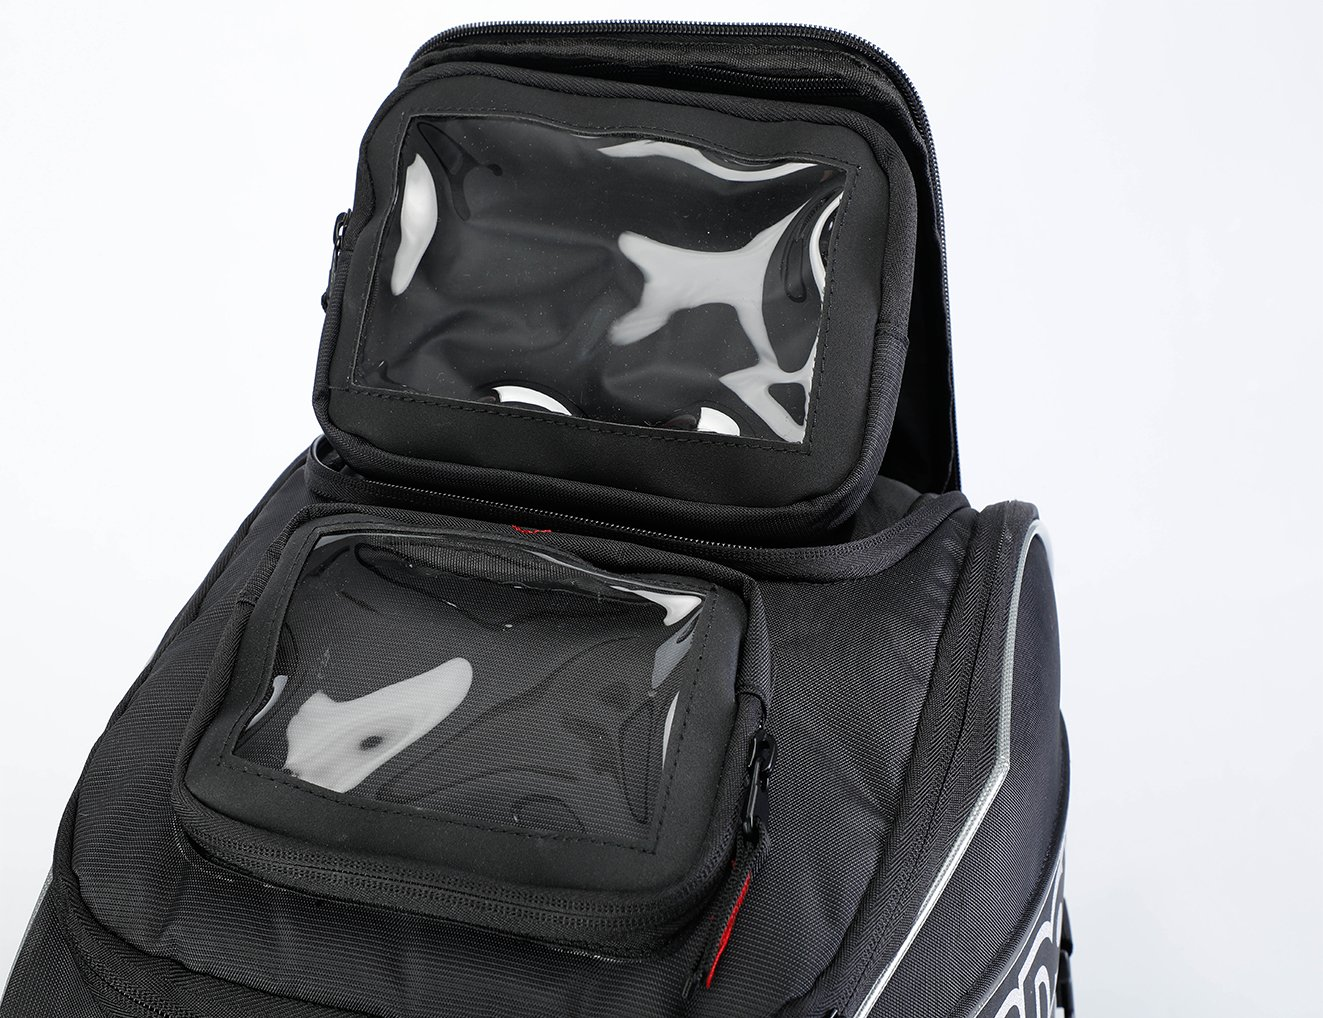 SEEU Motorcycle Tank Bag with Strong Magnetic//strap Mount Water Resistant Reflective